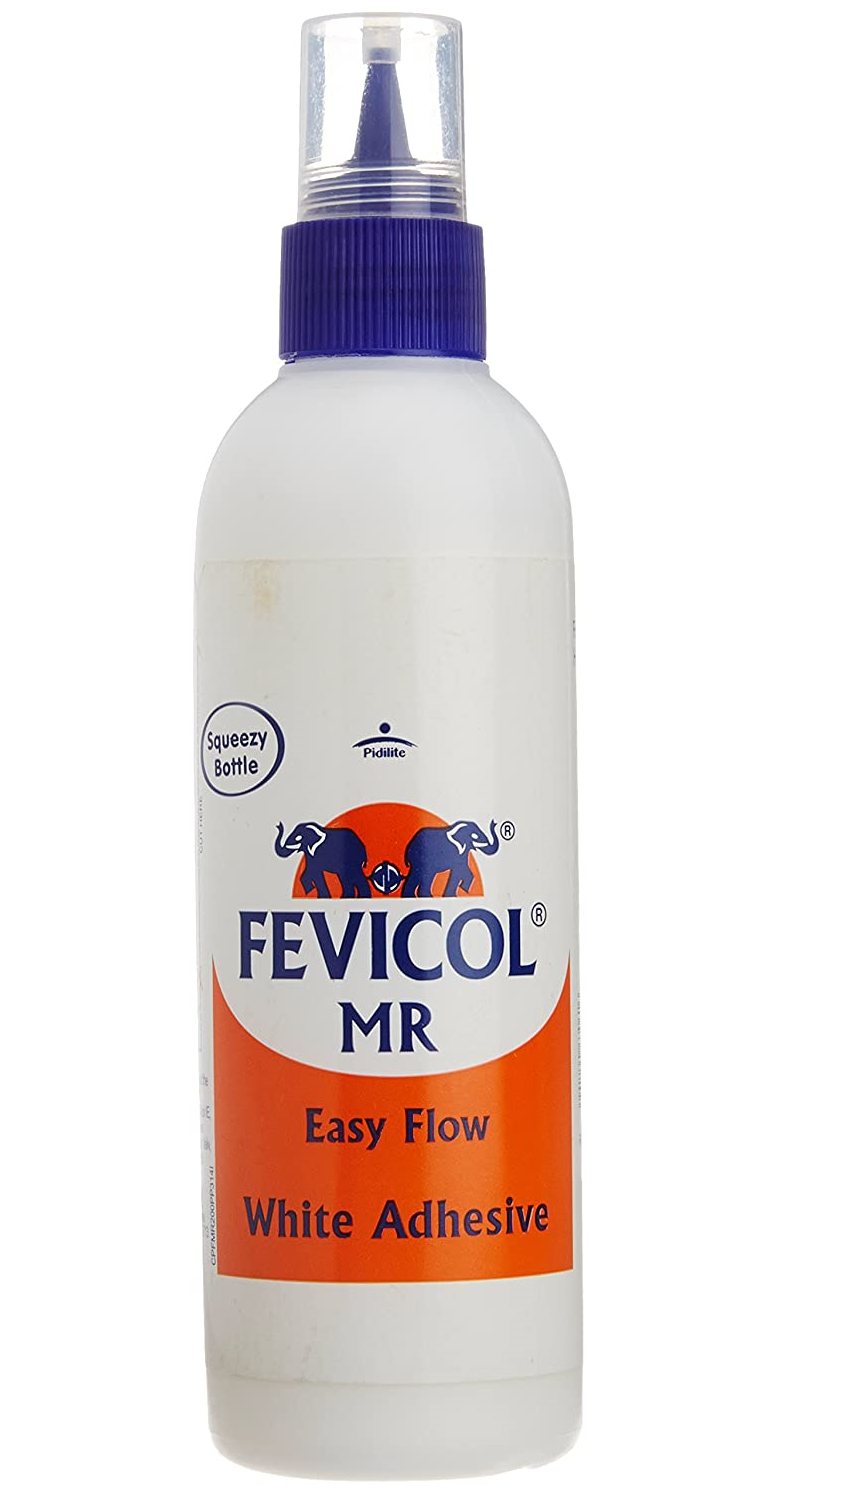 Fevicol MR Squeeze Bottle, 100 grams